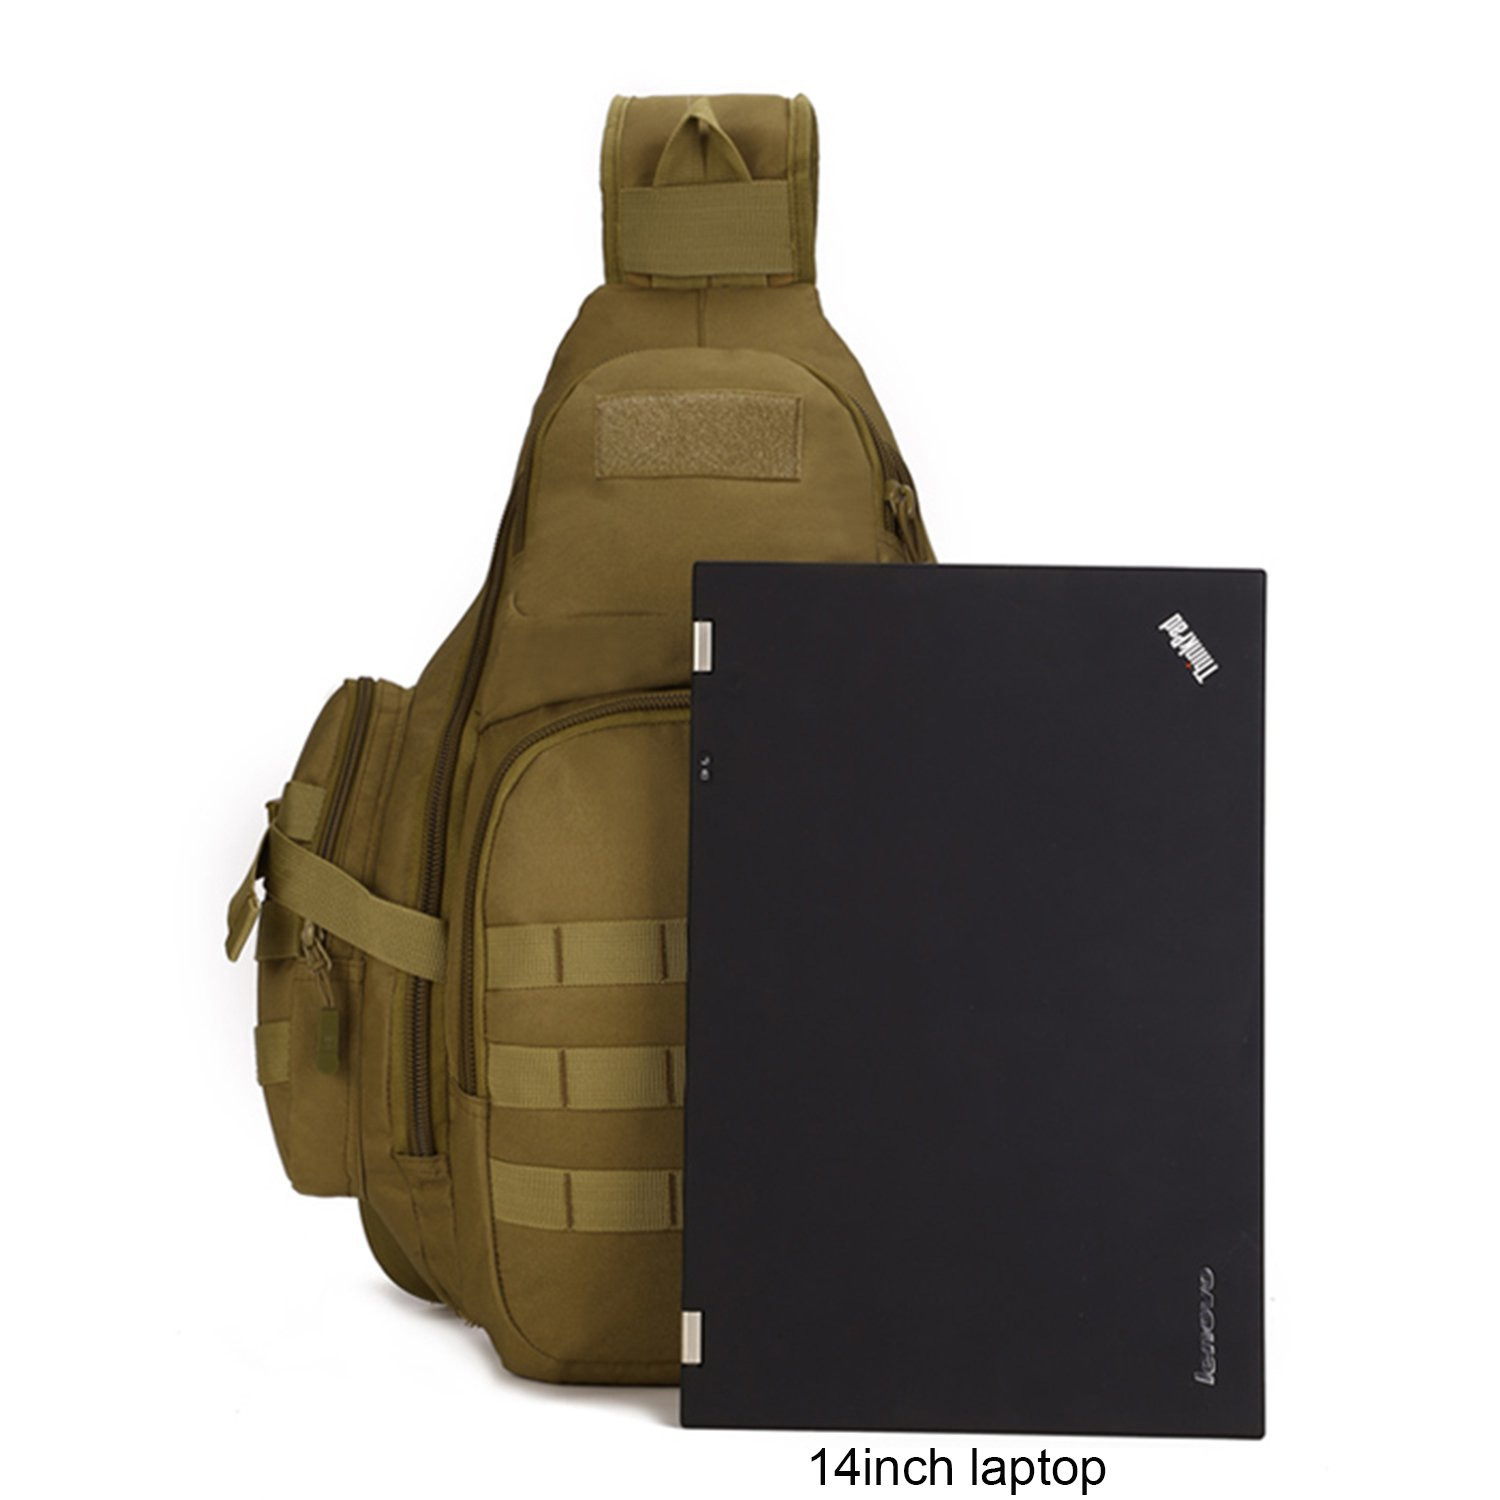 Tactical Sling Pack Backpack Military Shoulder Chest Bag by Sunvp  Amazon.co.uk   Sports   Outdoors f6e373177390d